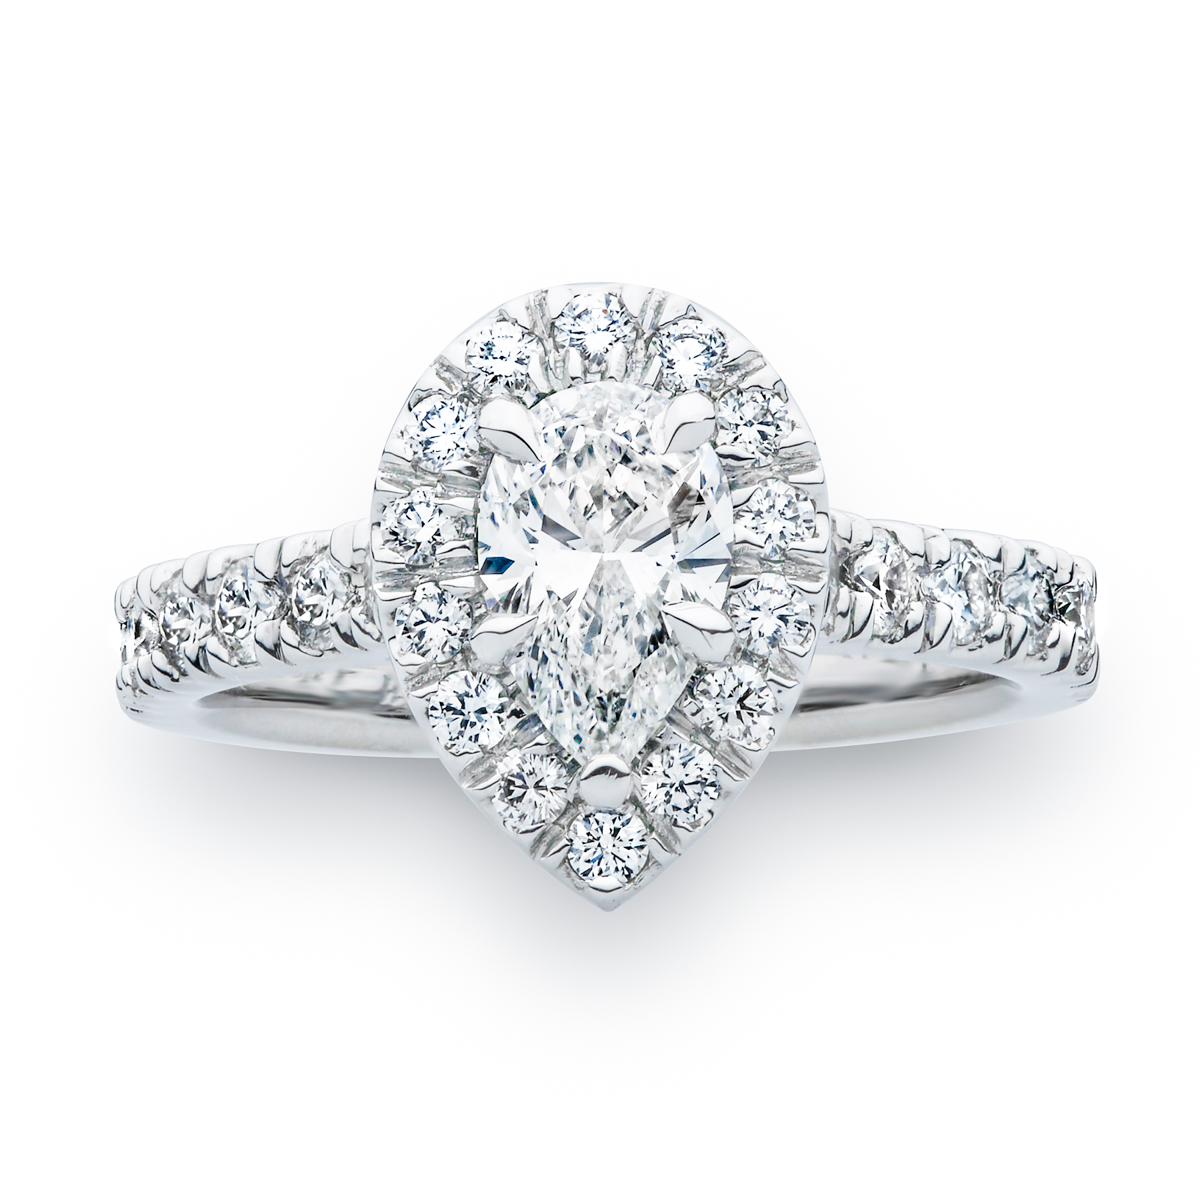 The Sydney Pear Shaped Diamond Engagement Ring